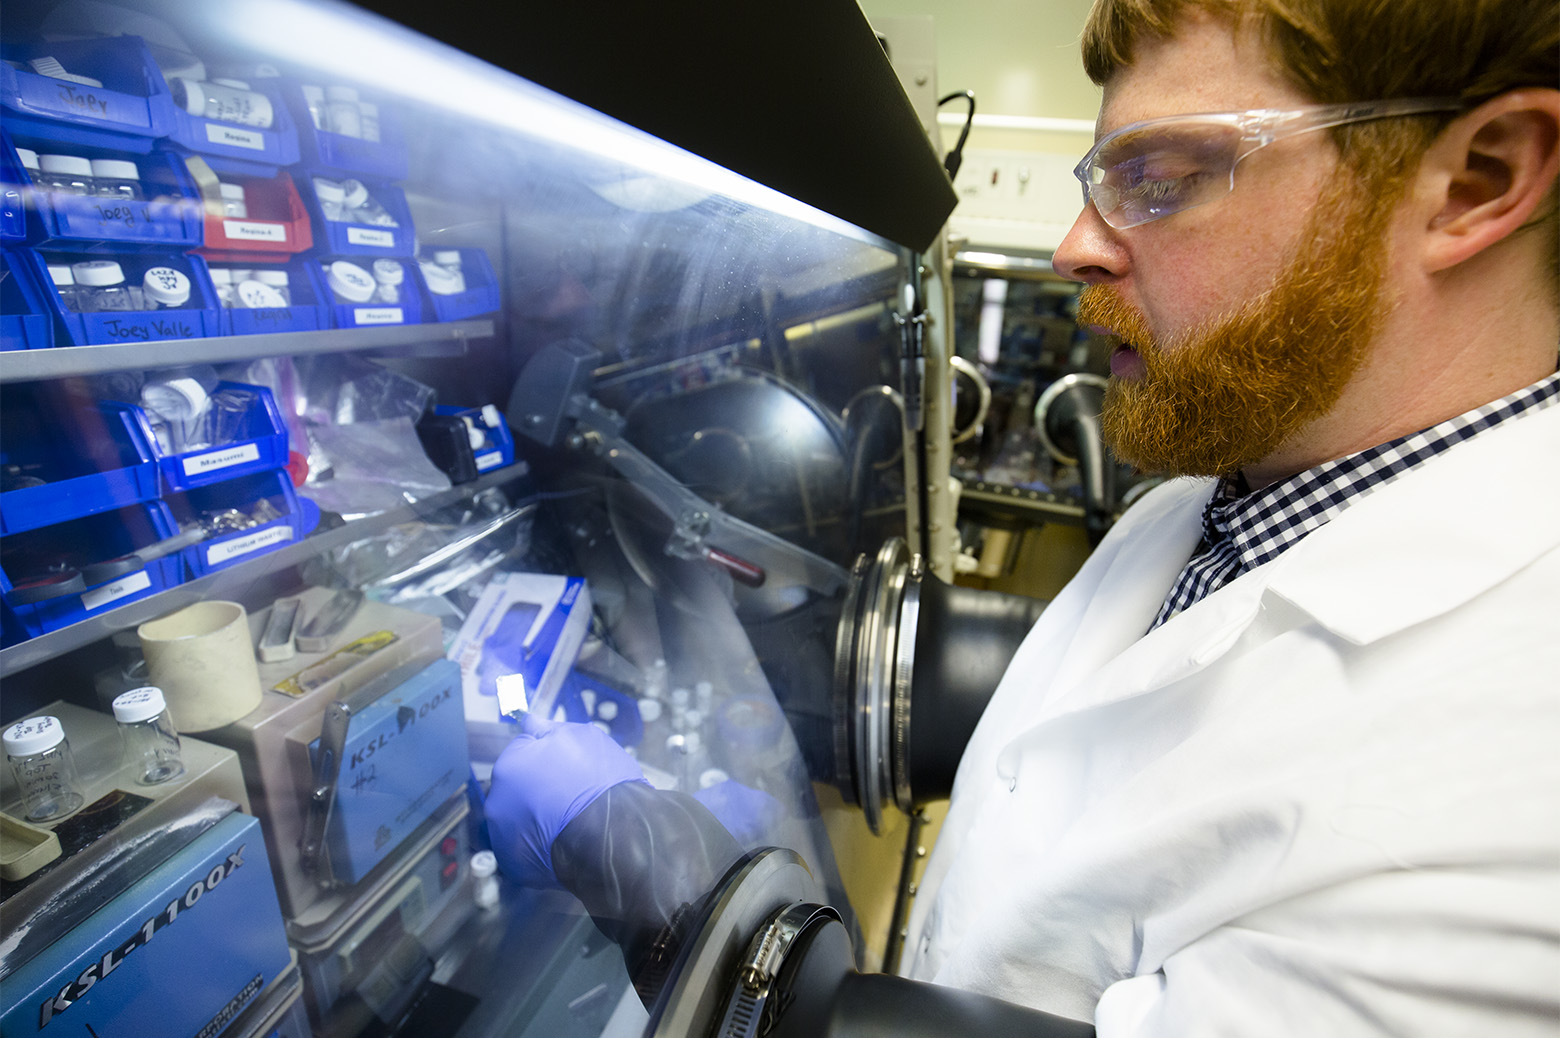 Nathan Taylor, a post-doctoral fellow in mechanical engineering, inspects a piece of lithium metal in the Phoenix Memorial Laboratory building at the University of Michigan on August 7, 2018 in Ann Arbor, MI.